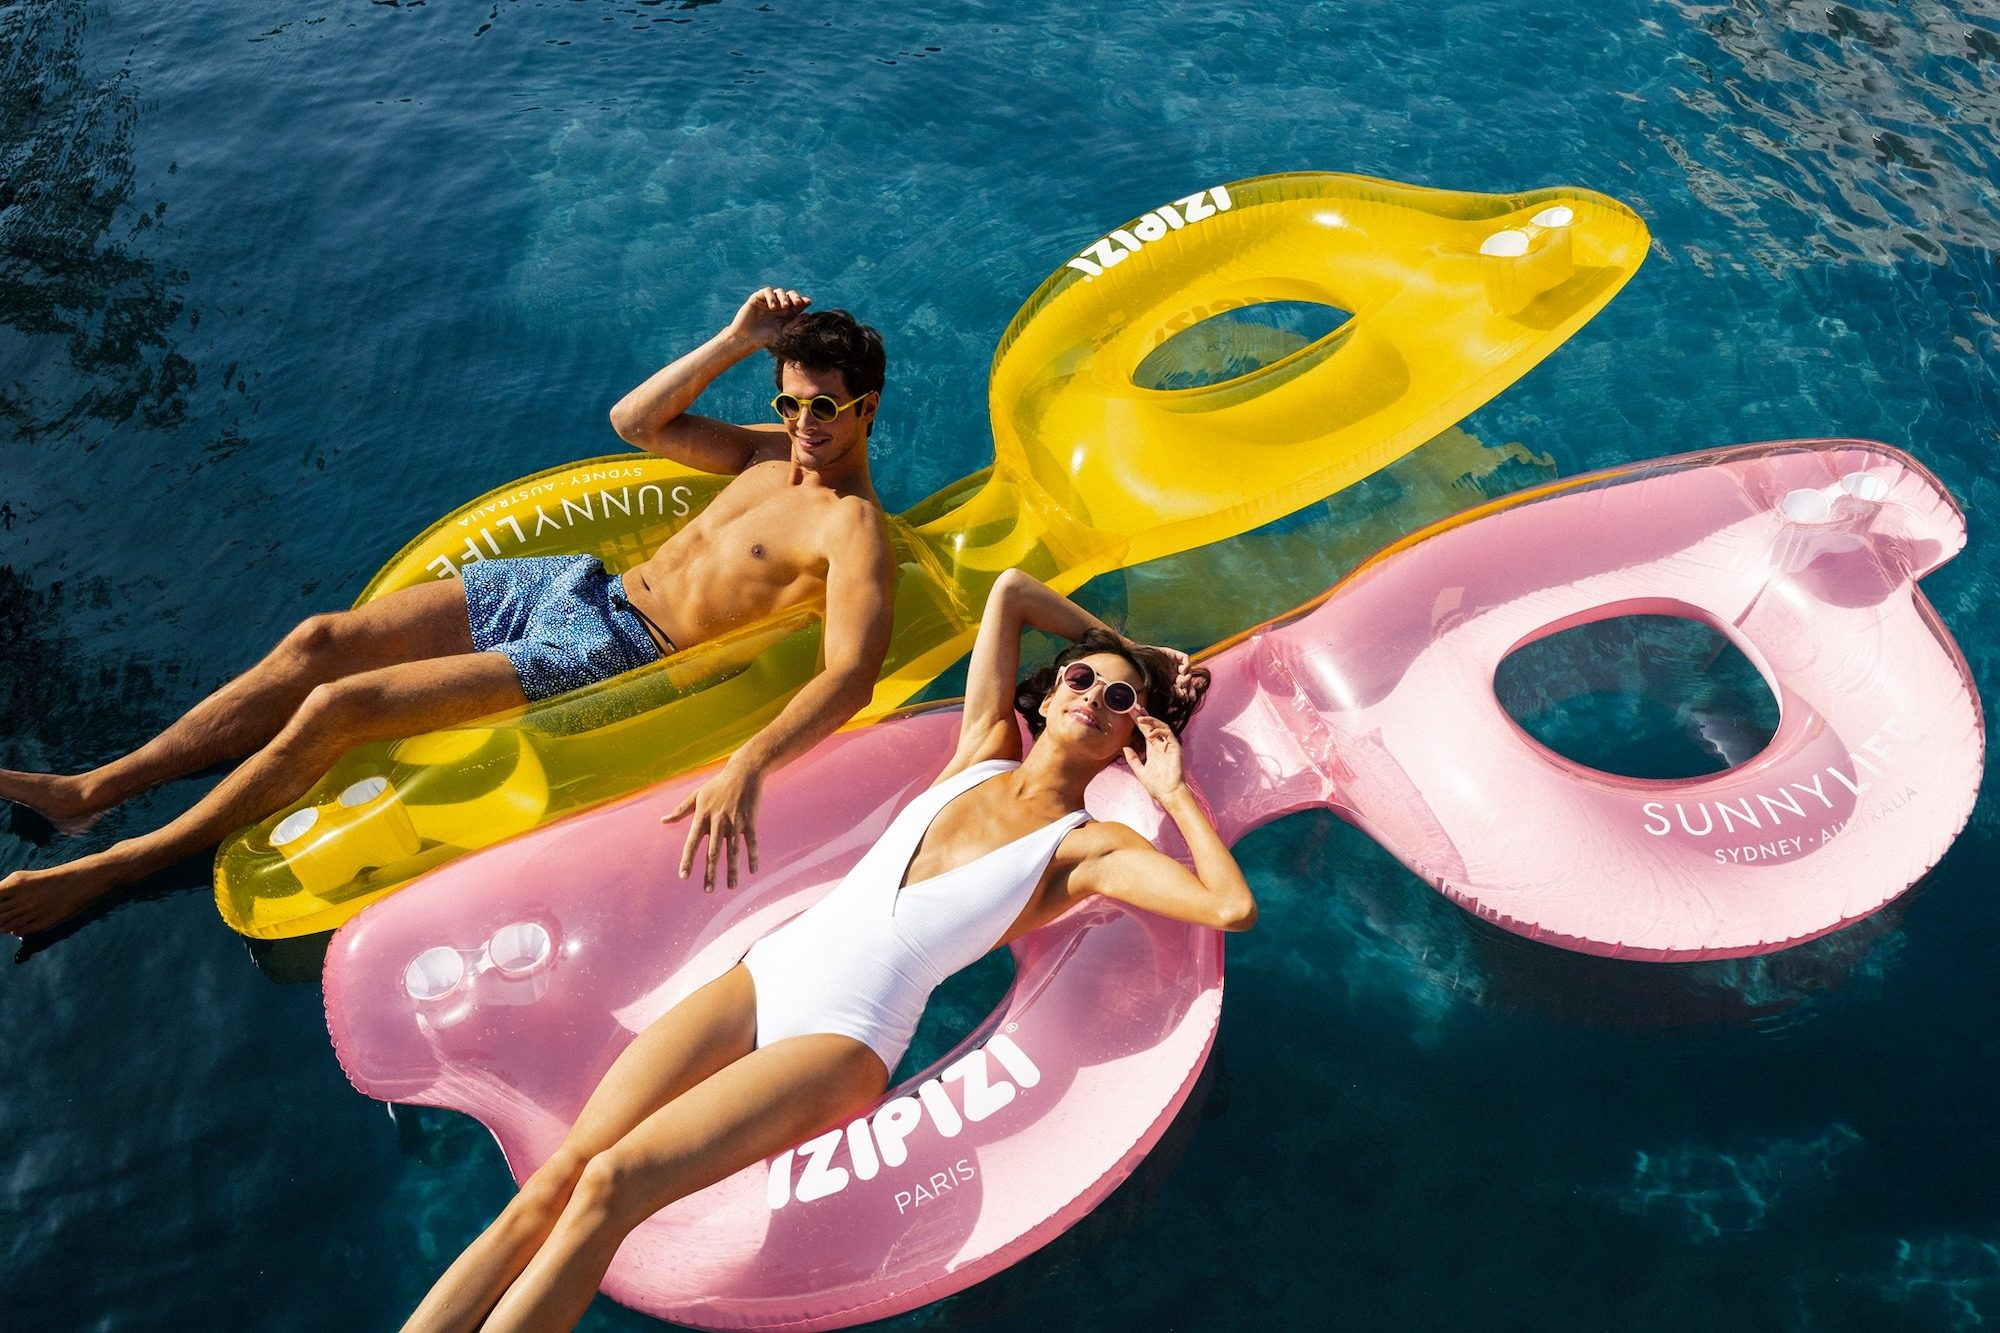 French brand IZIPIZI creates trendy and youthful glasses and sunglasses for women, men, kids and babies like those worn by this man and woman floating on huge floats in the shape of glasses on the sea.